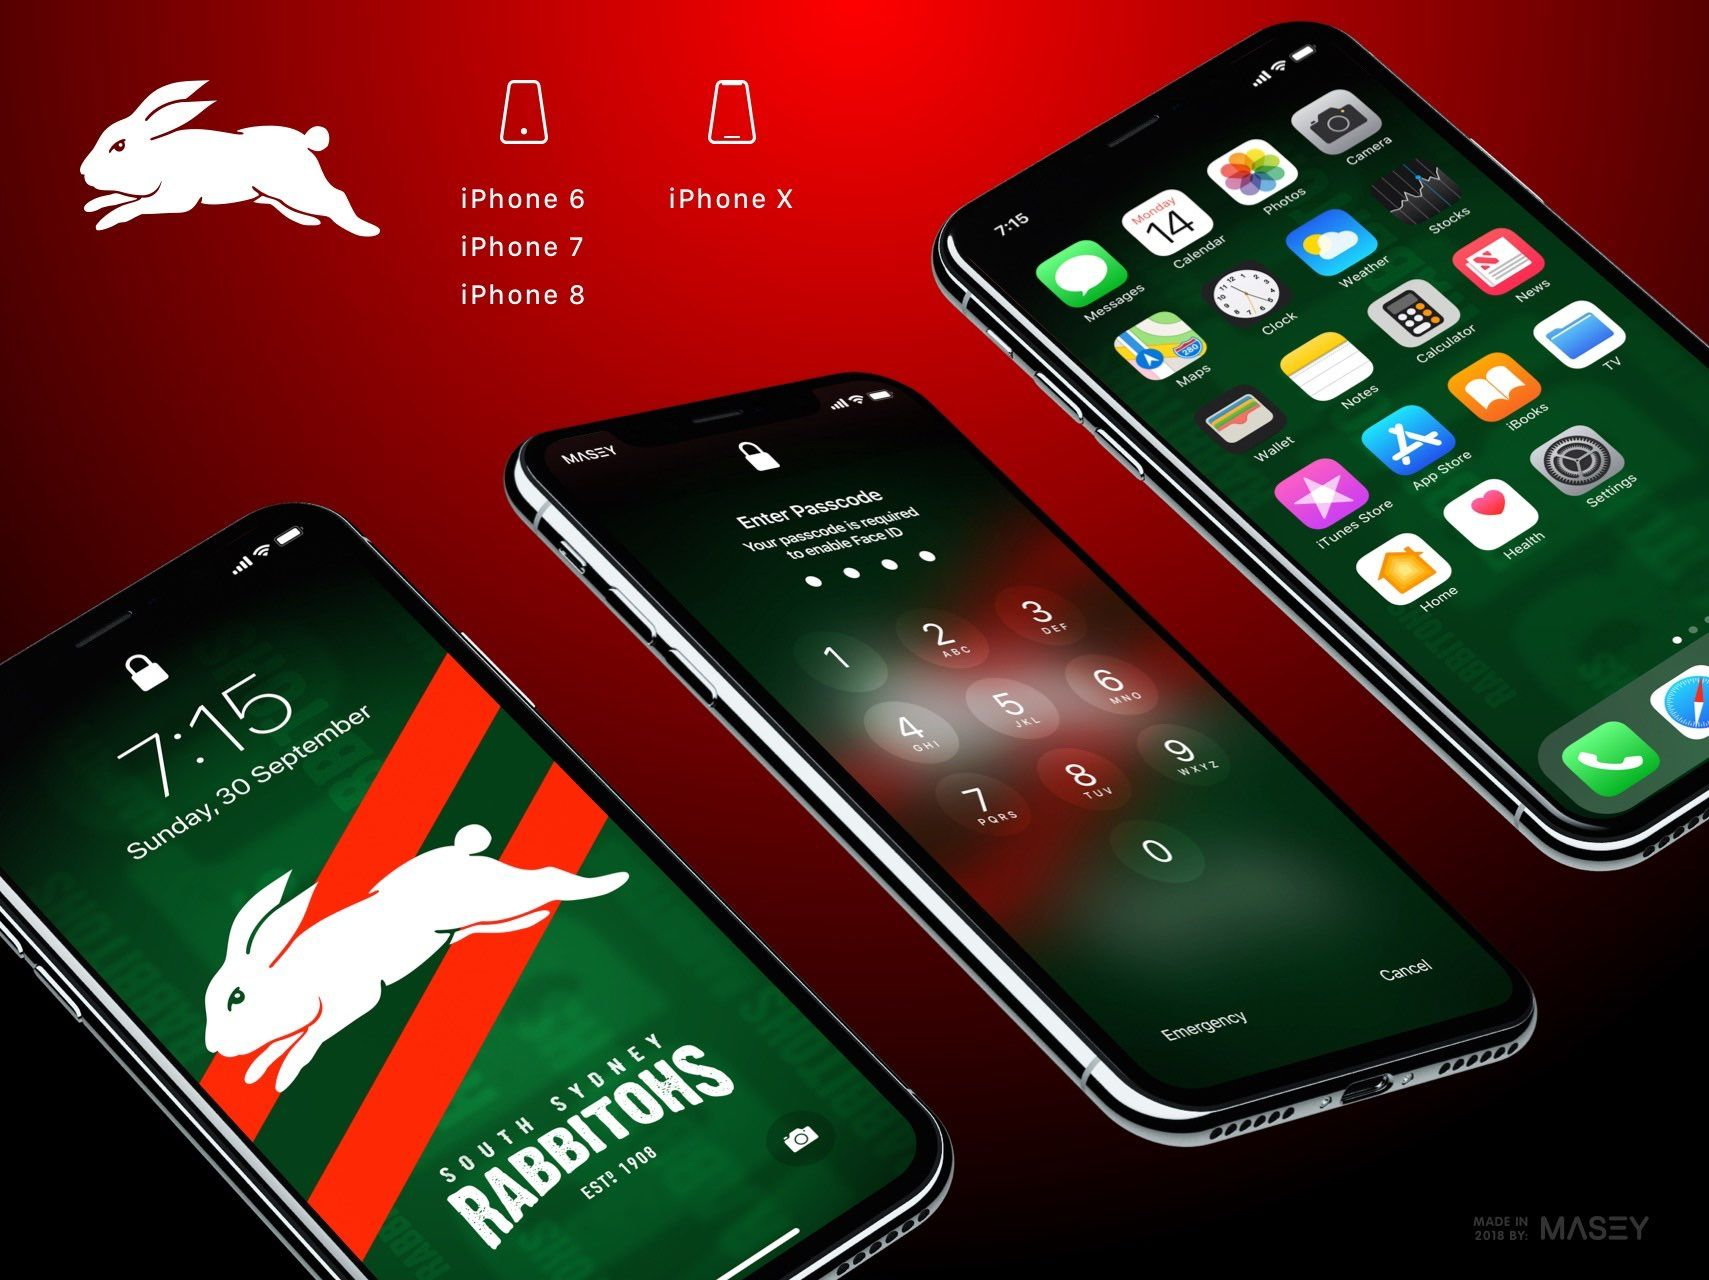 South Sydney Rabbitohs Iphone Wallpaper Iphone Wallpaper Iphone Team Wallpaper